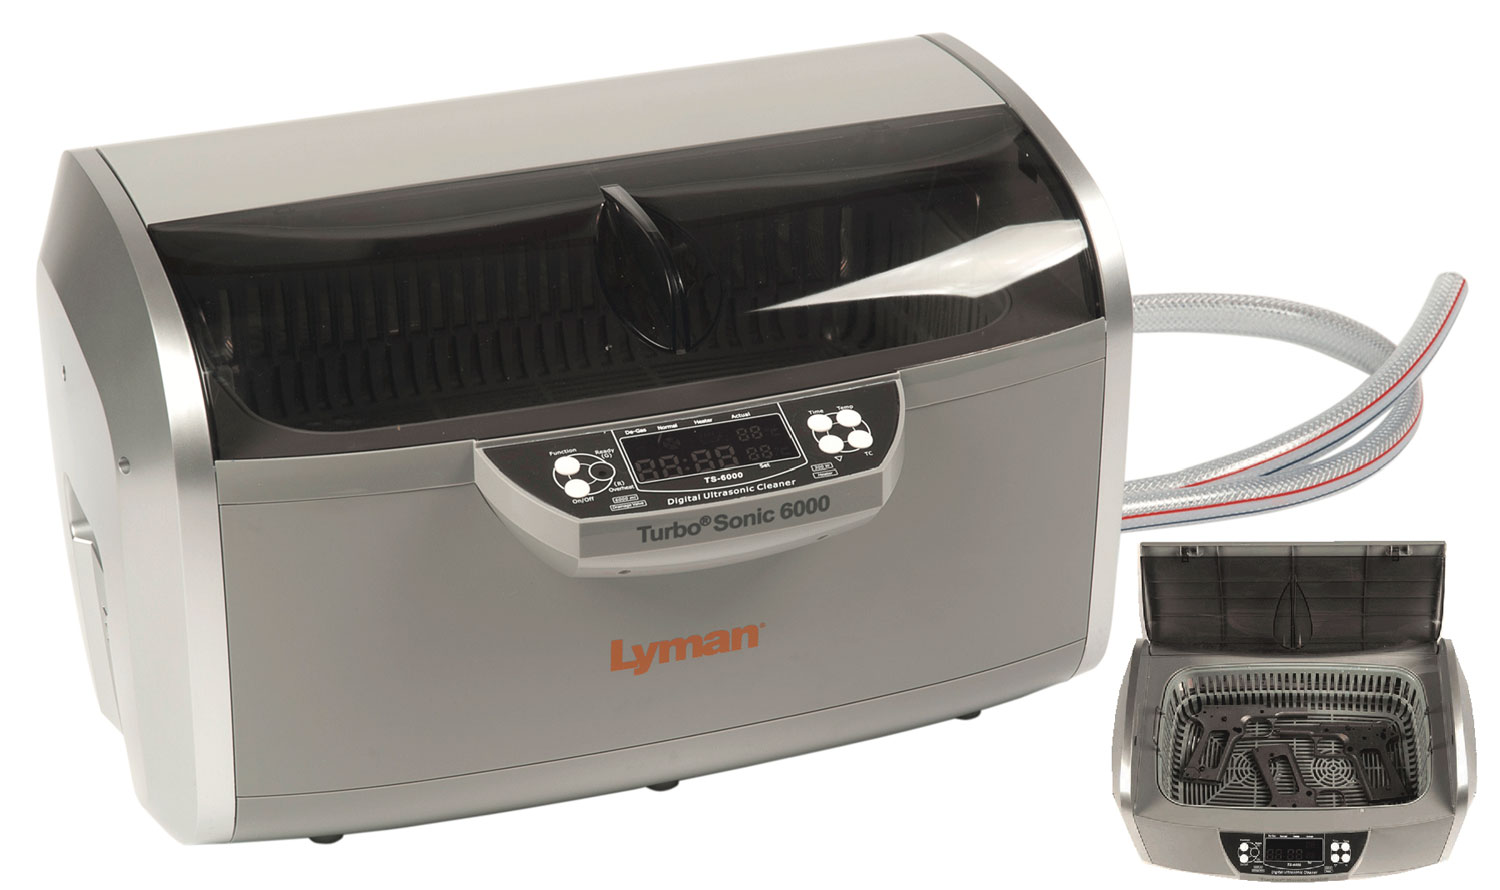 Lyman 7631725 Turbo Sonic 6000 Ultrasonic Case Cleaner 115V 6.3qt 15lbs